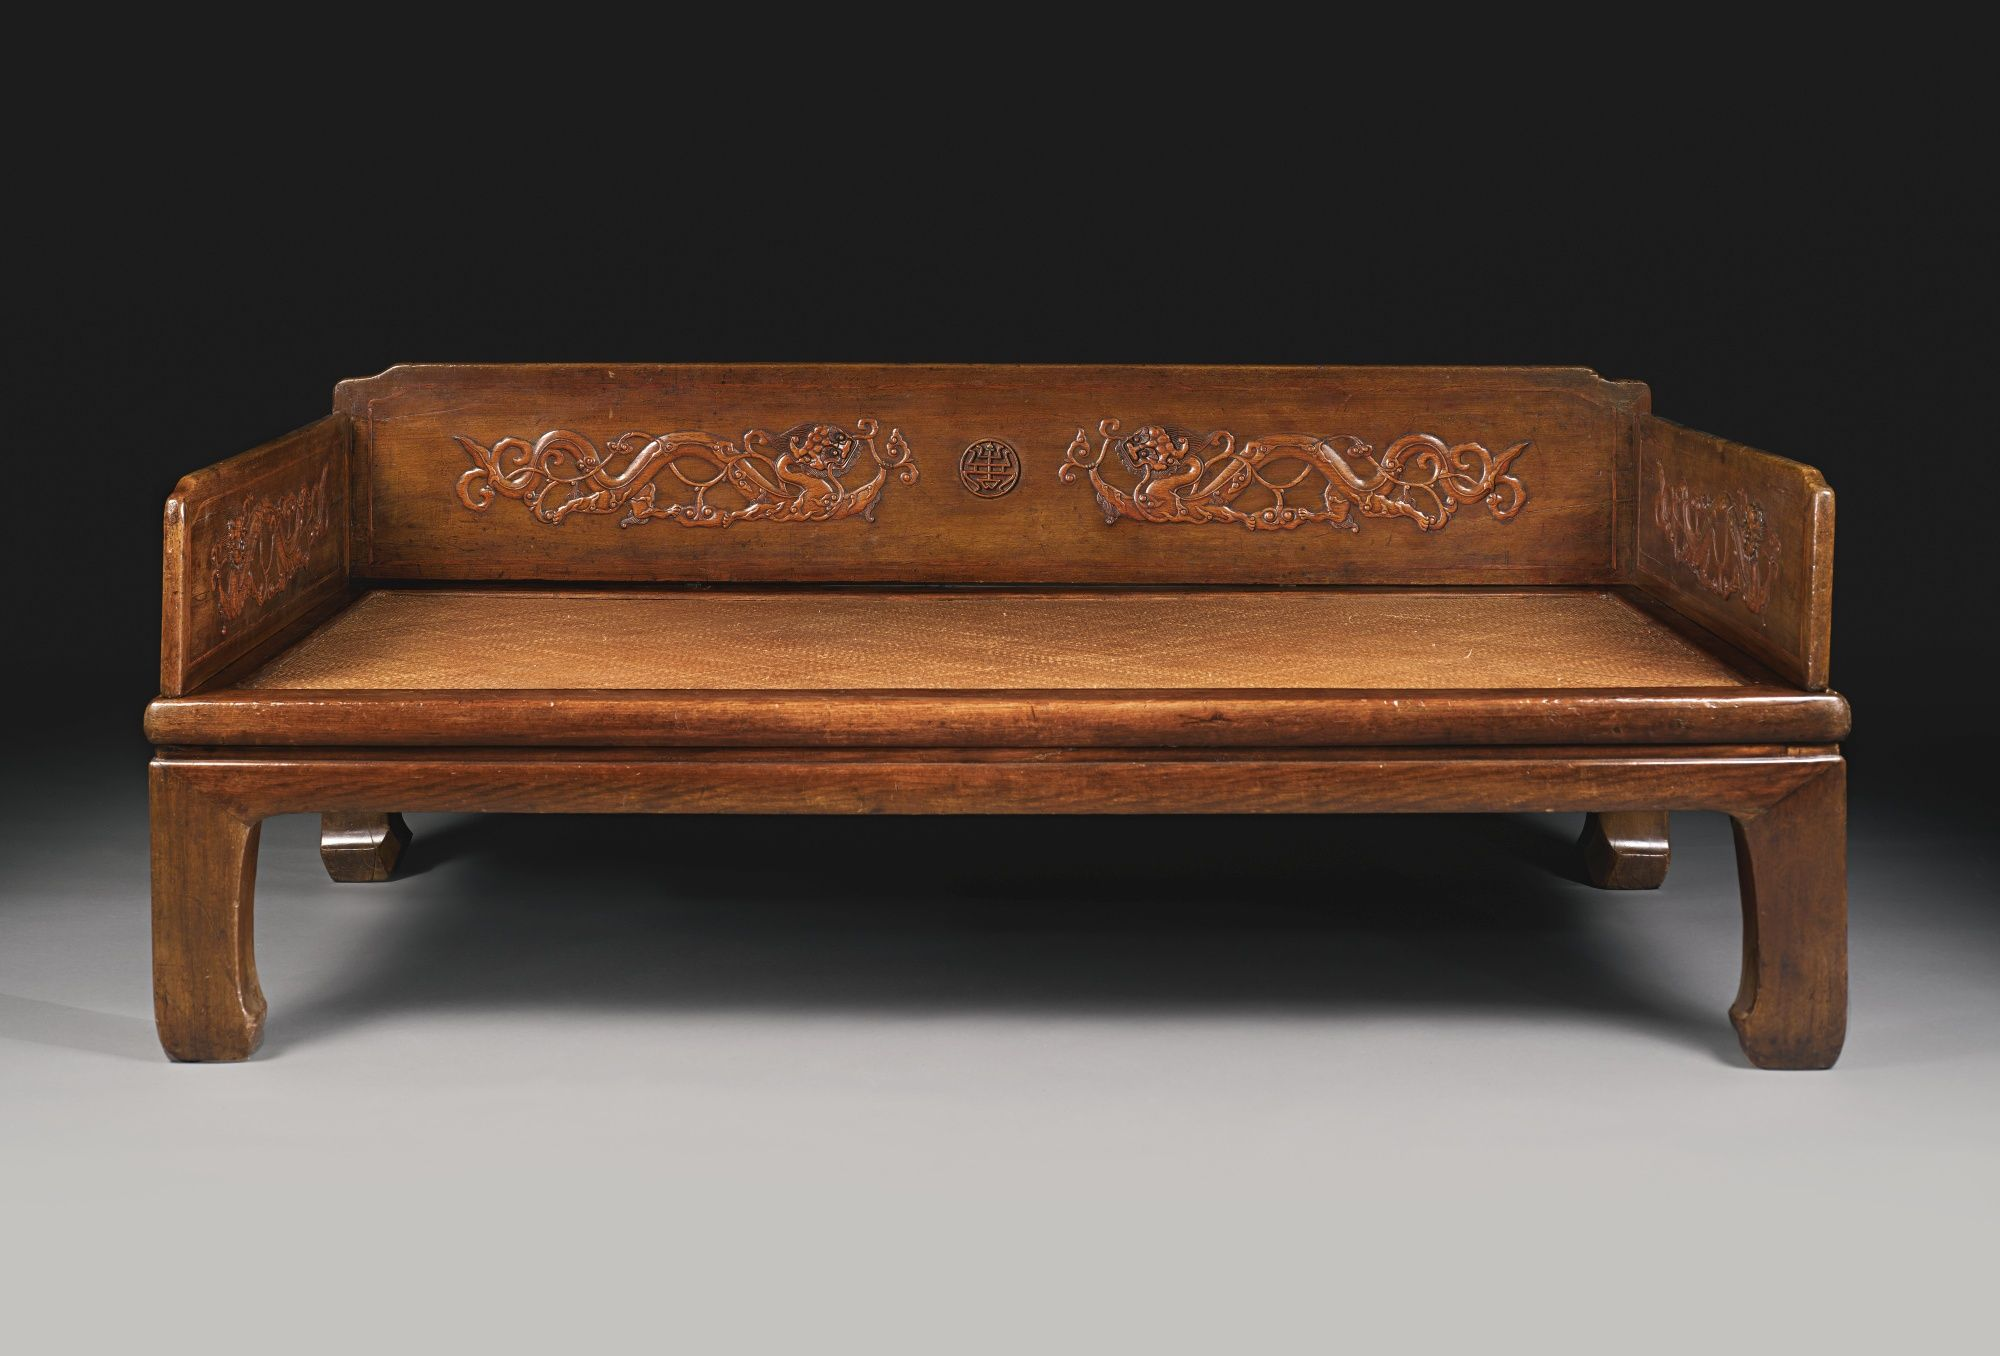 Furniture Sotheby S N09006lot6q9xhen With Images Chinese Furniture Furniture Chinese